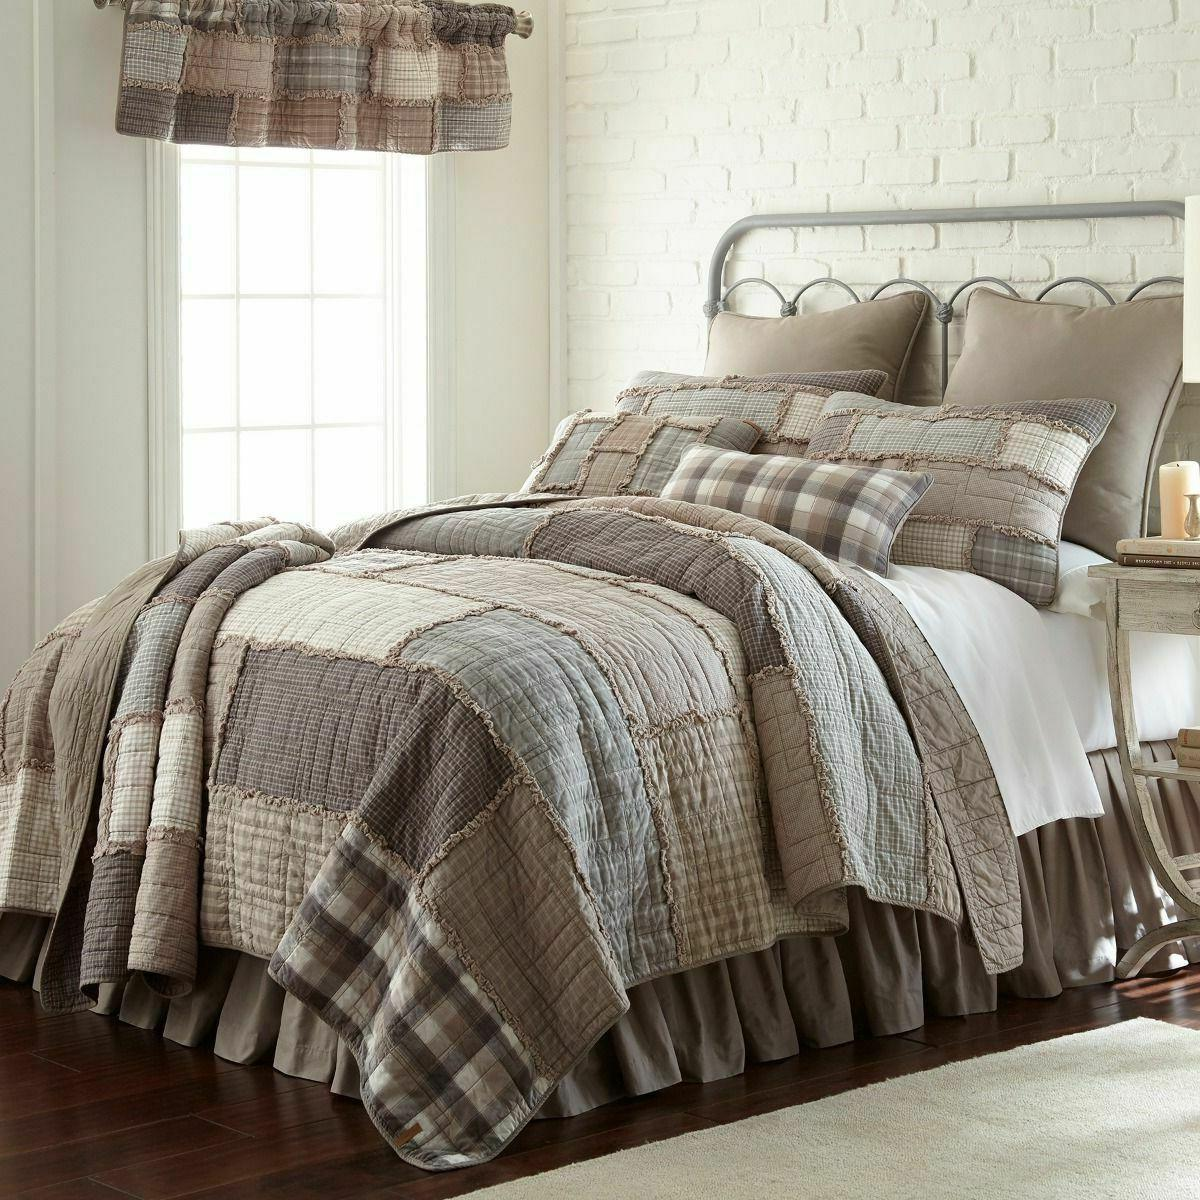 SMOKY Quilts & Accessories Farmhouse Country Bedding